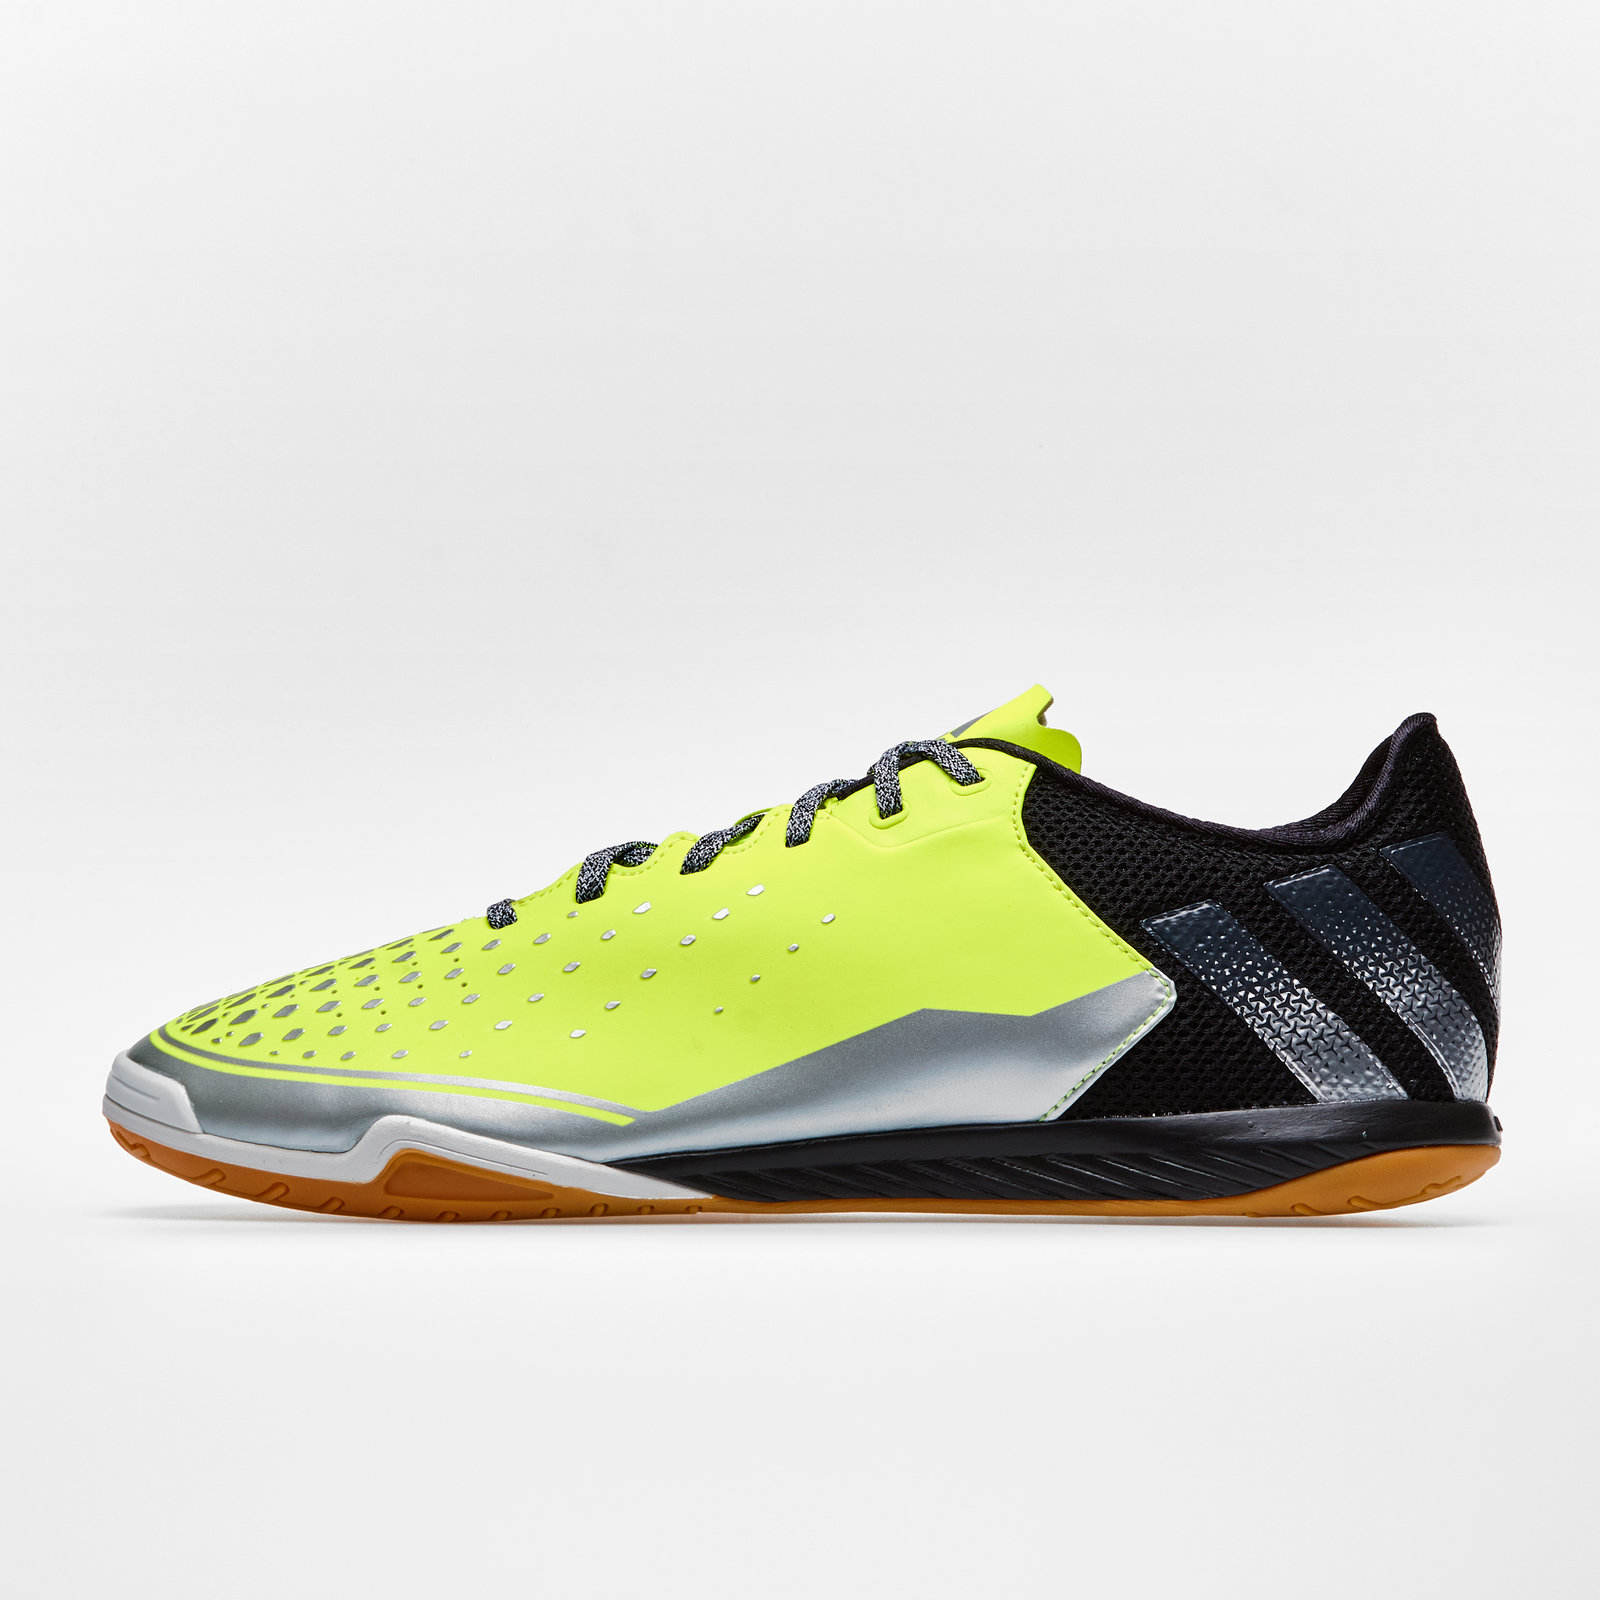 Image of Ace 16.2 Court Football Trainers